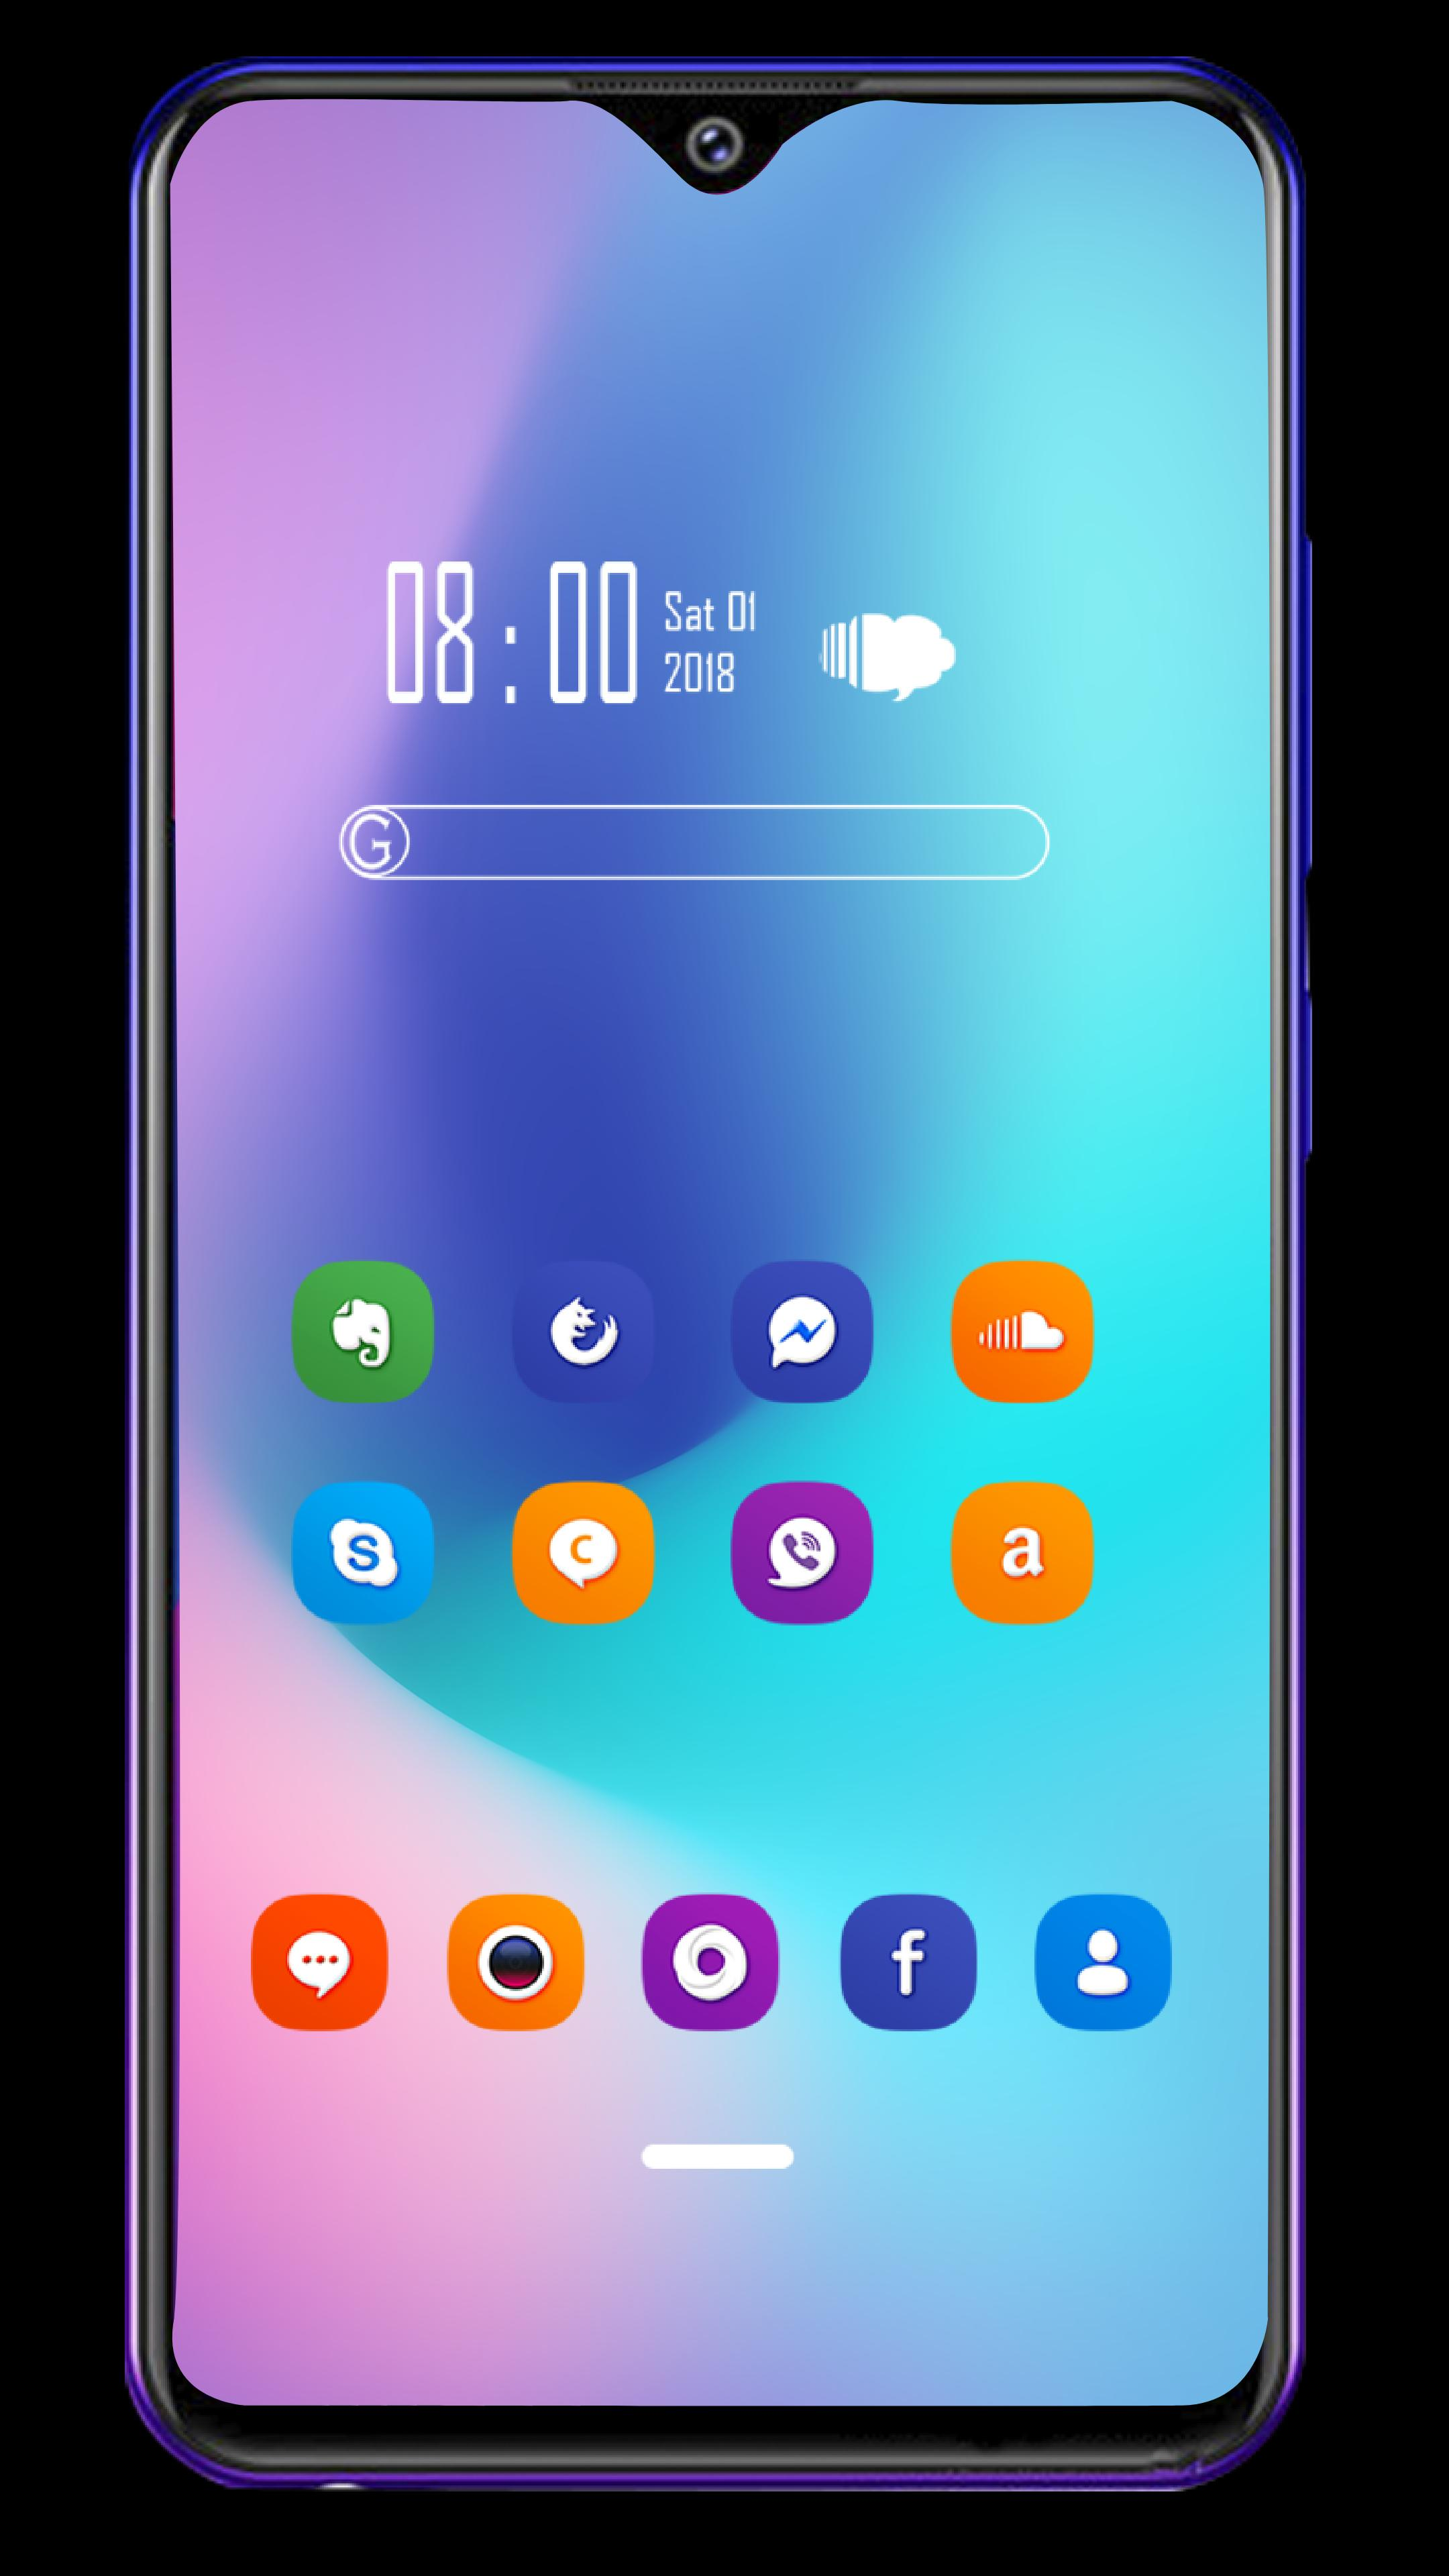 Wallpapers For Samsung Galaxy M10 For Android Apk Download